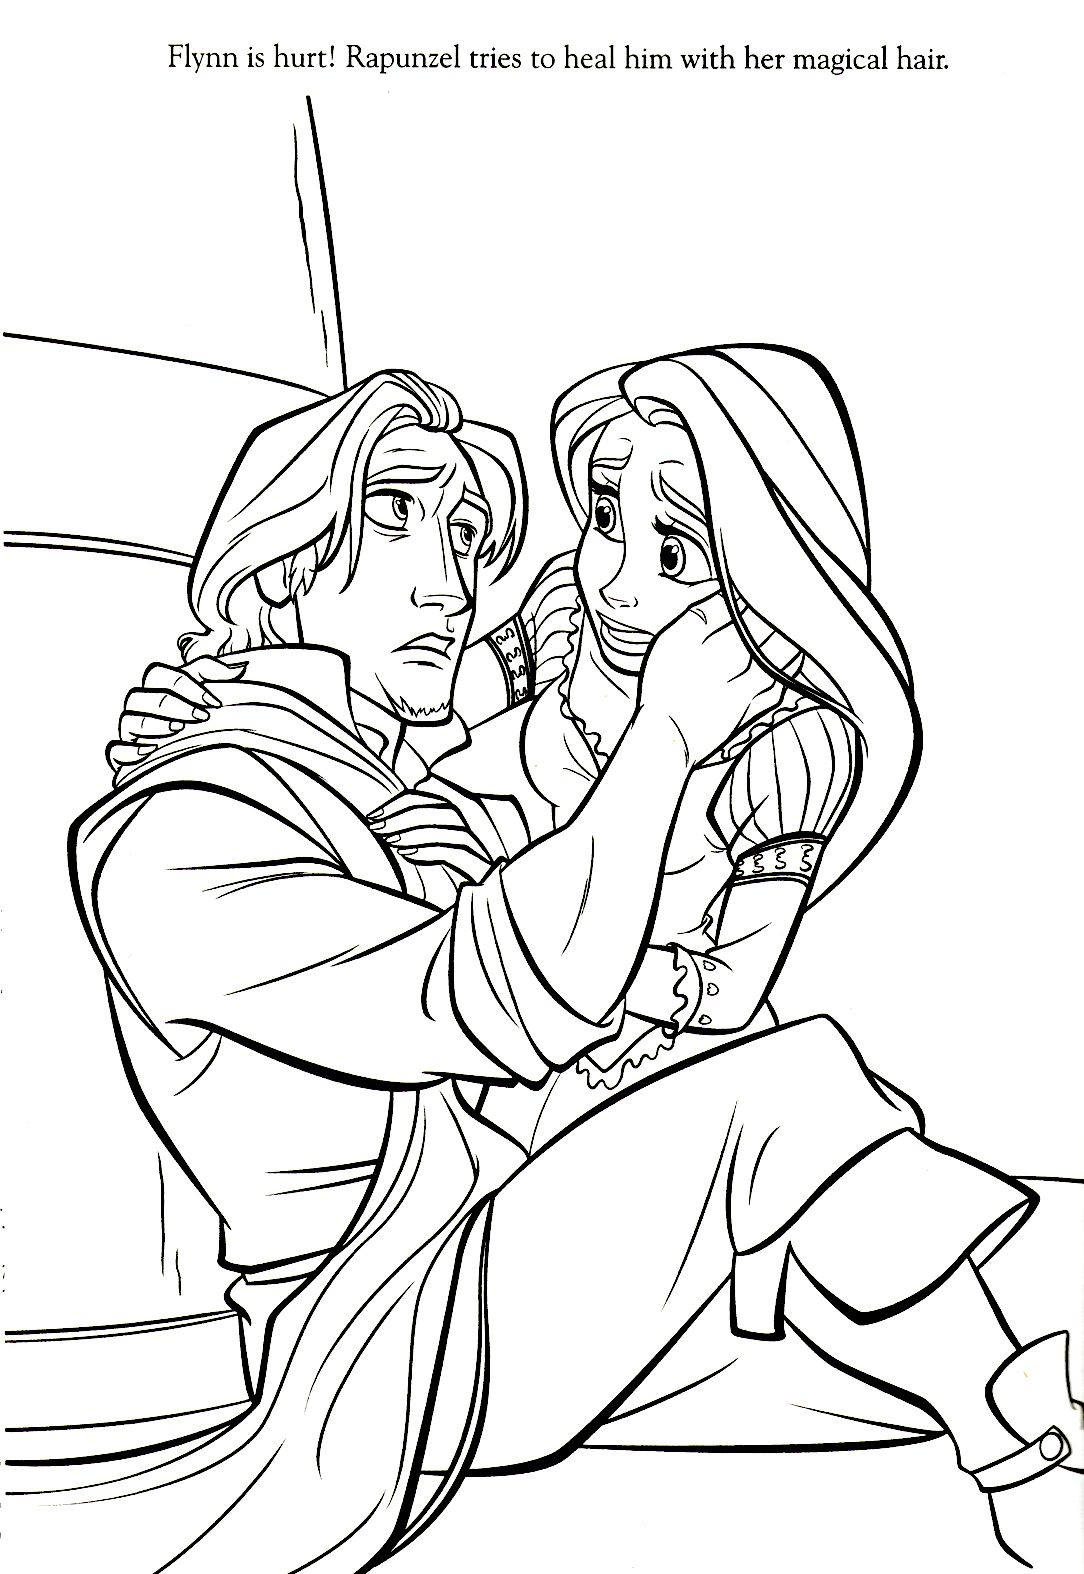 Disney Coloring Pages | Printables | Pinterest | Rapunzel, Tangled ...